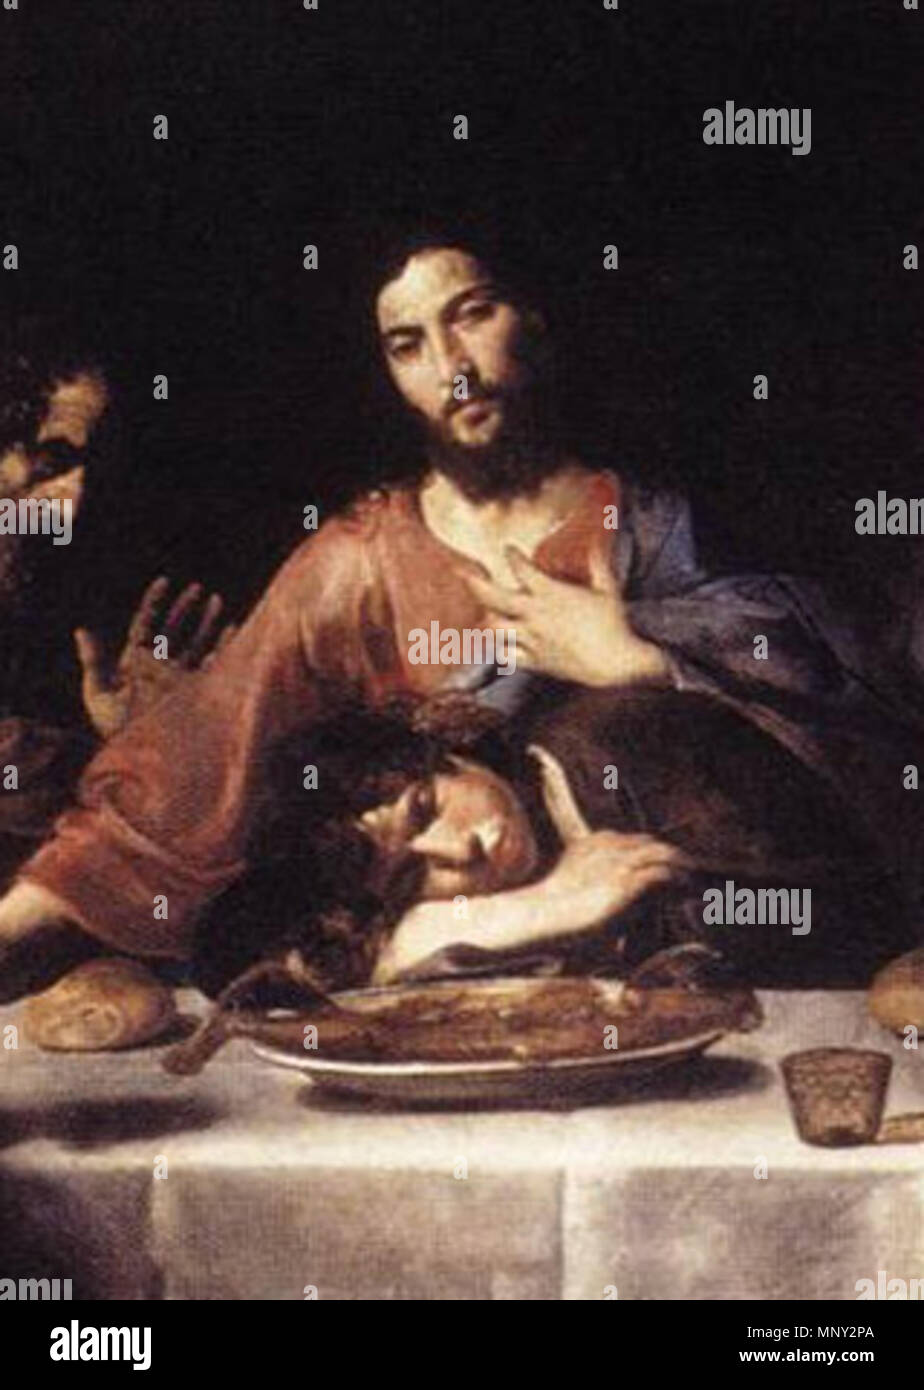 St. John and Jesus at the Last Supper   17th century.   1218 Valentin de boulogne, John and Jesus - Stock Image